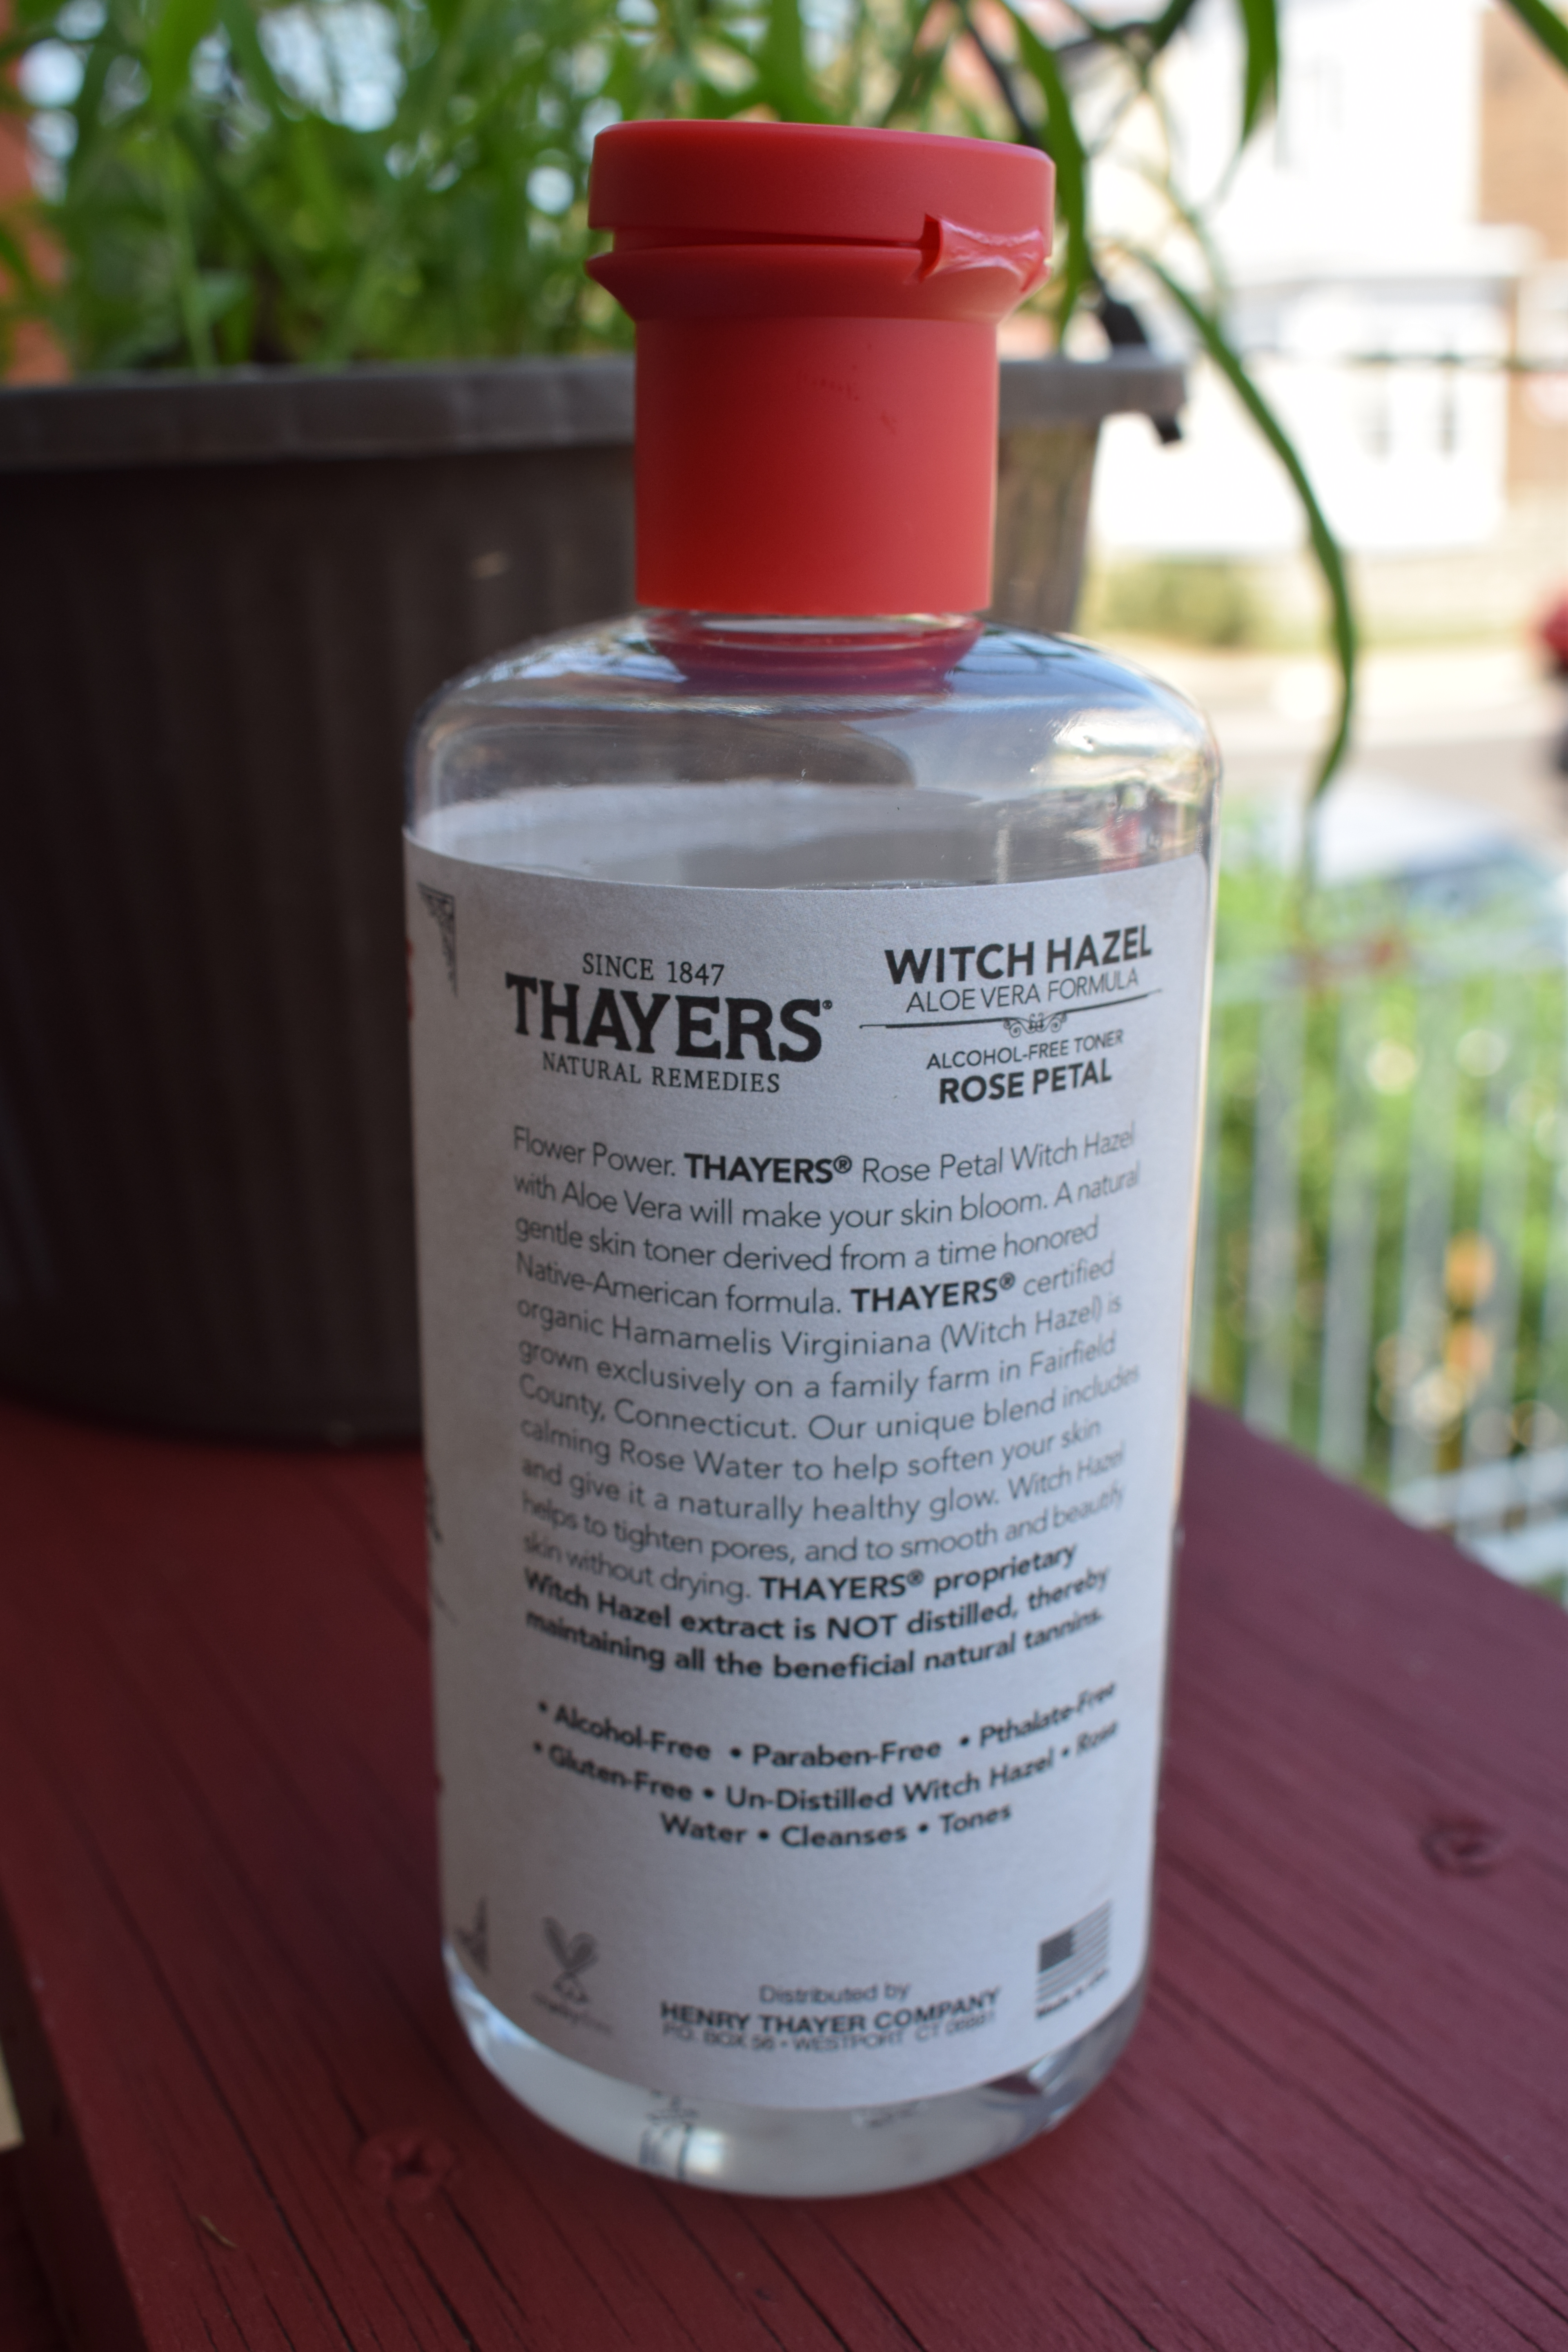 Thayers Witch Hazel Rose Petal Toner Review.JPG